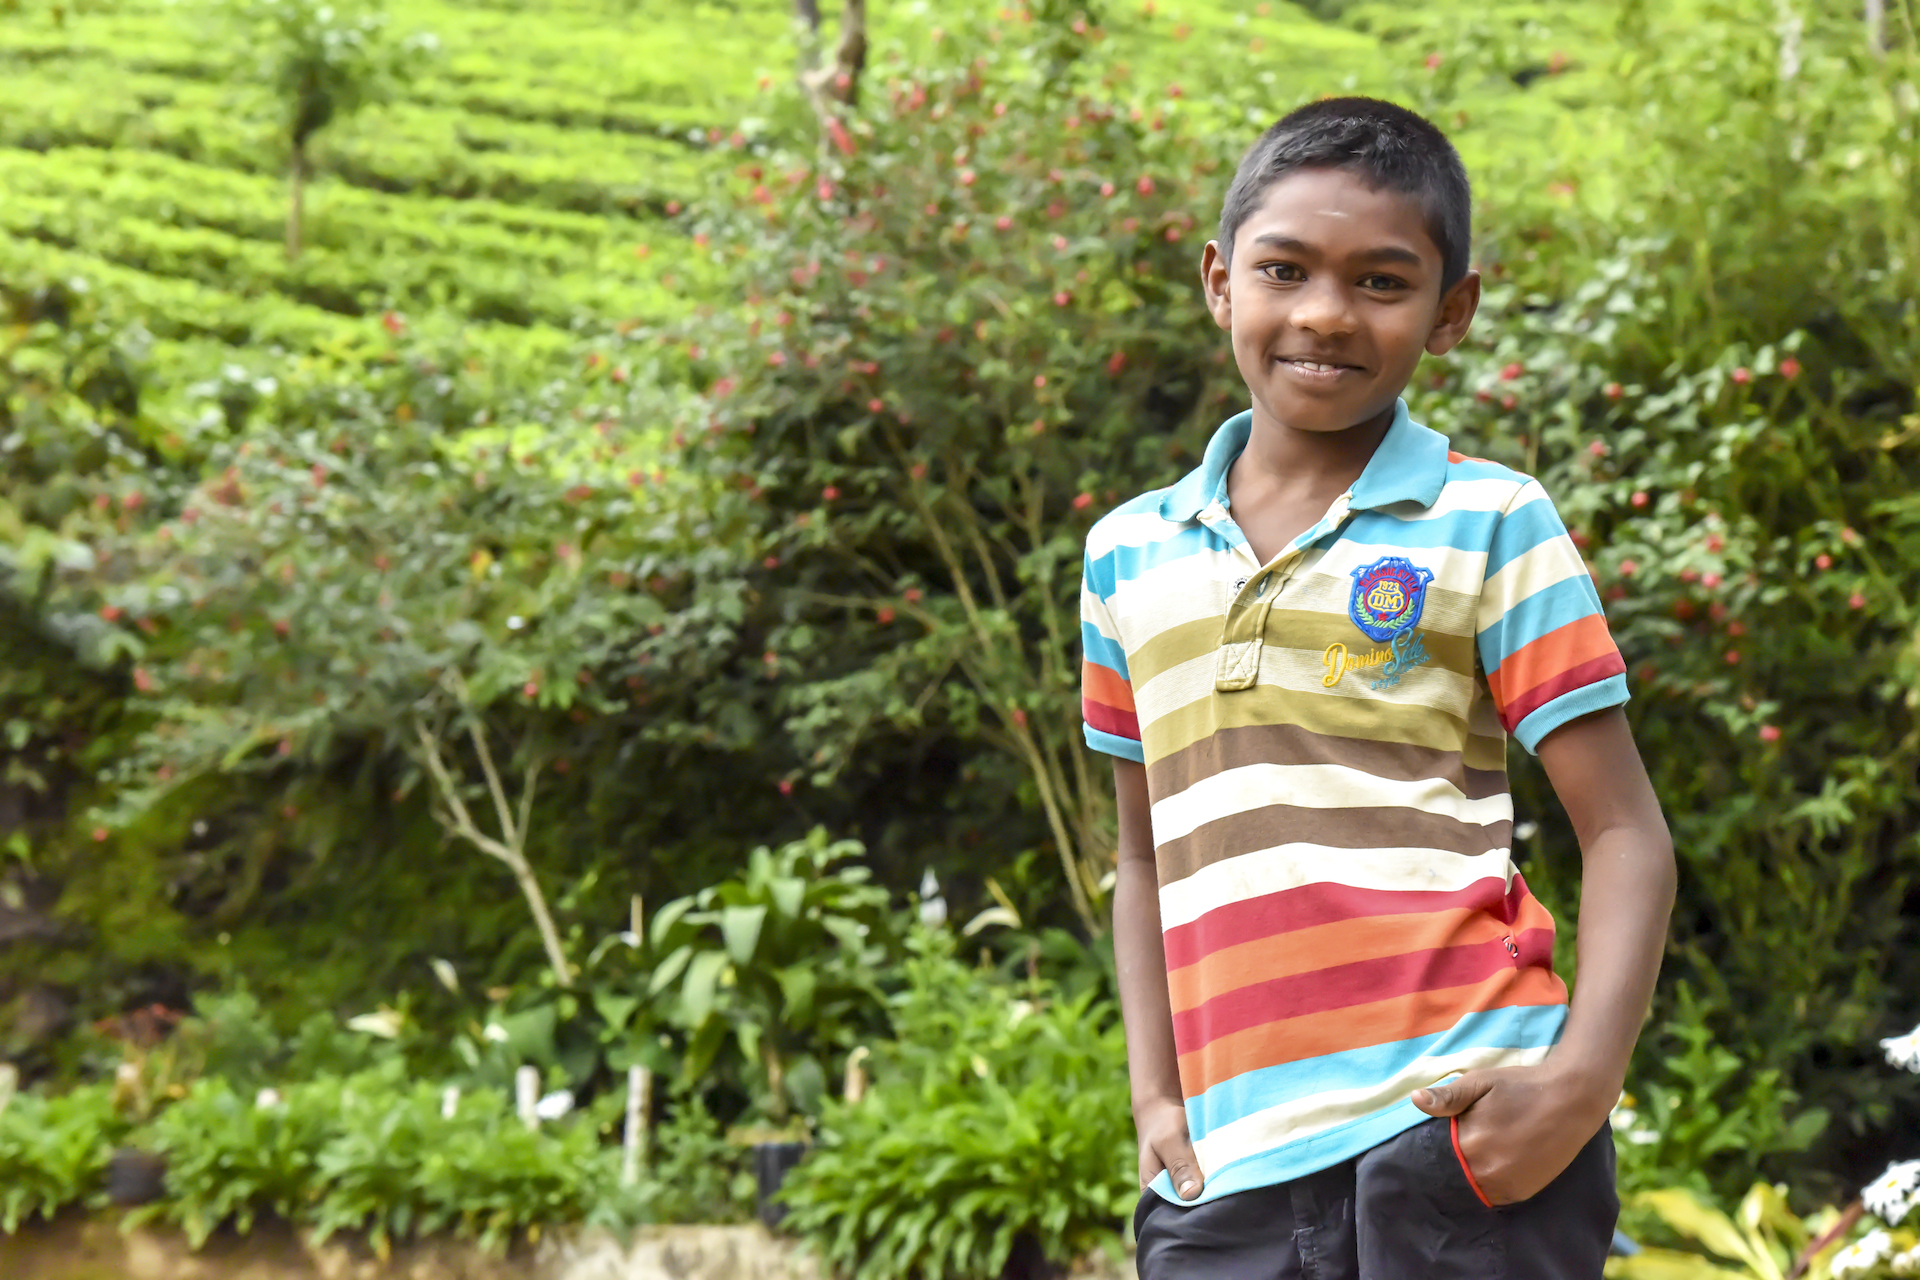 A South Asian boy in a striped polo shirt stands in front of greenery.